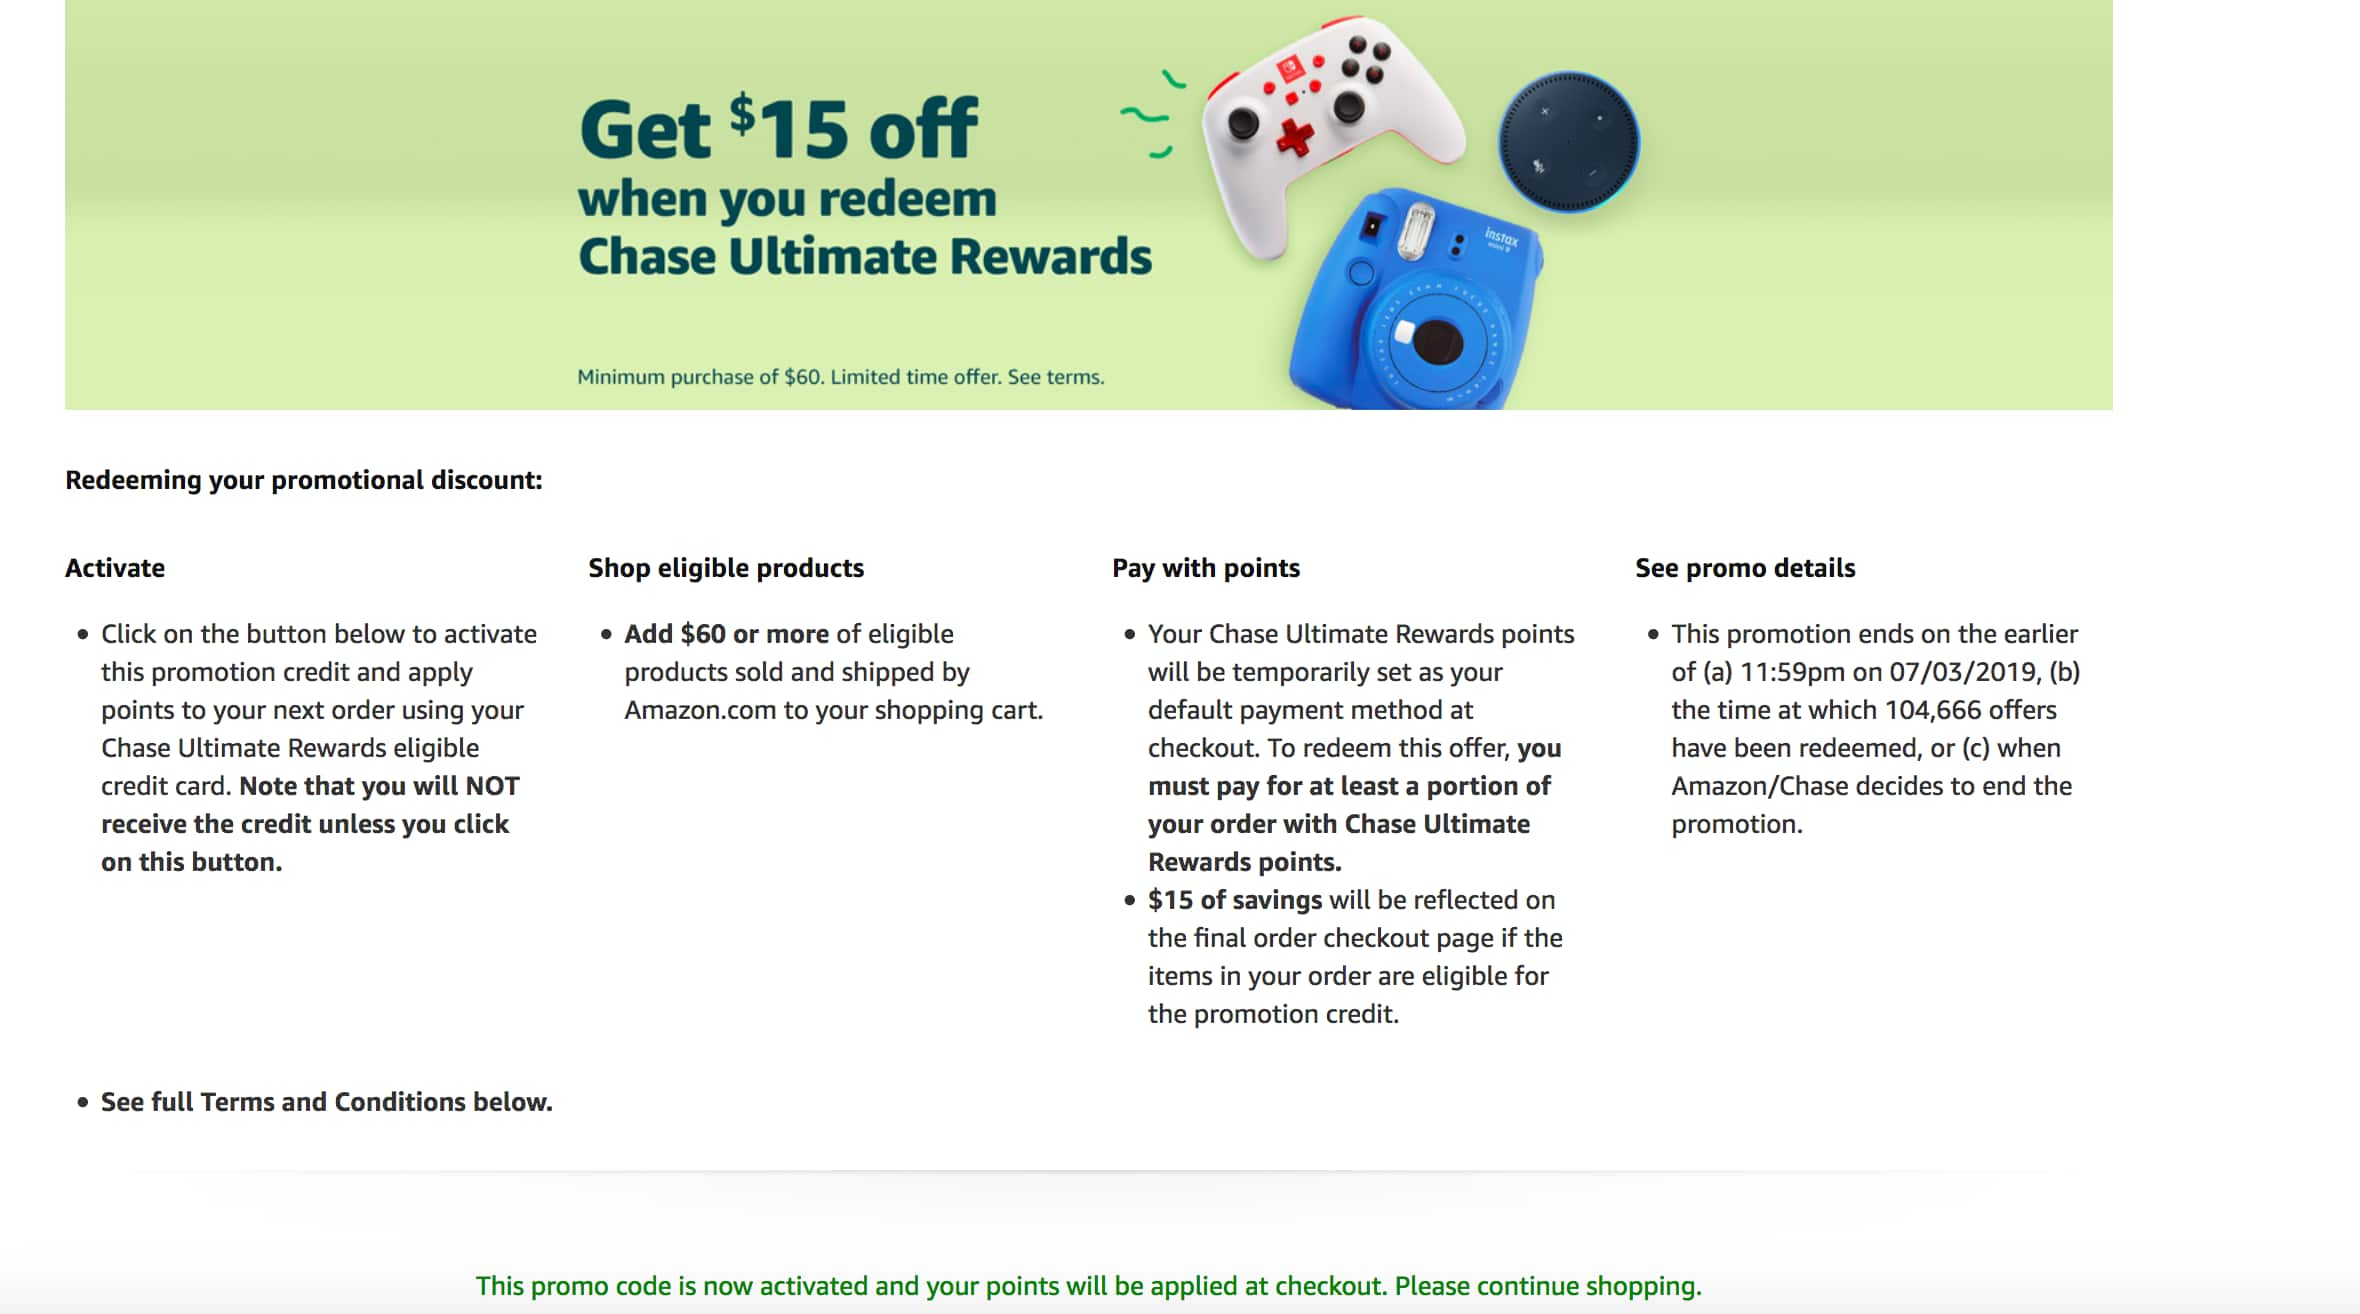 Chase Ultimate Rewards on Amazon Get $15 off purchase of $60 YMMV